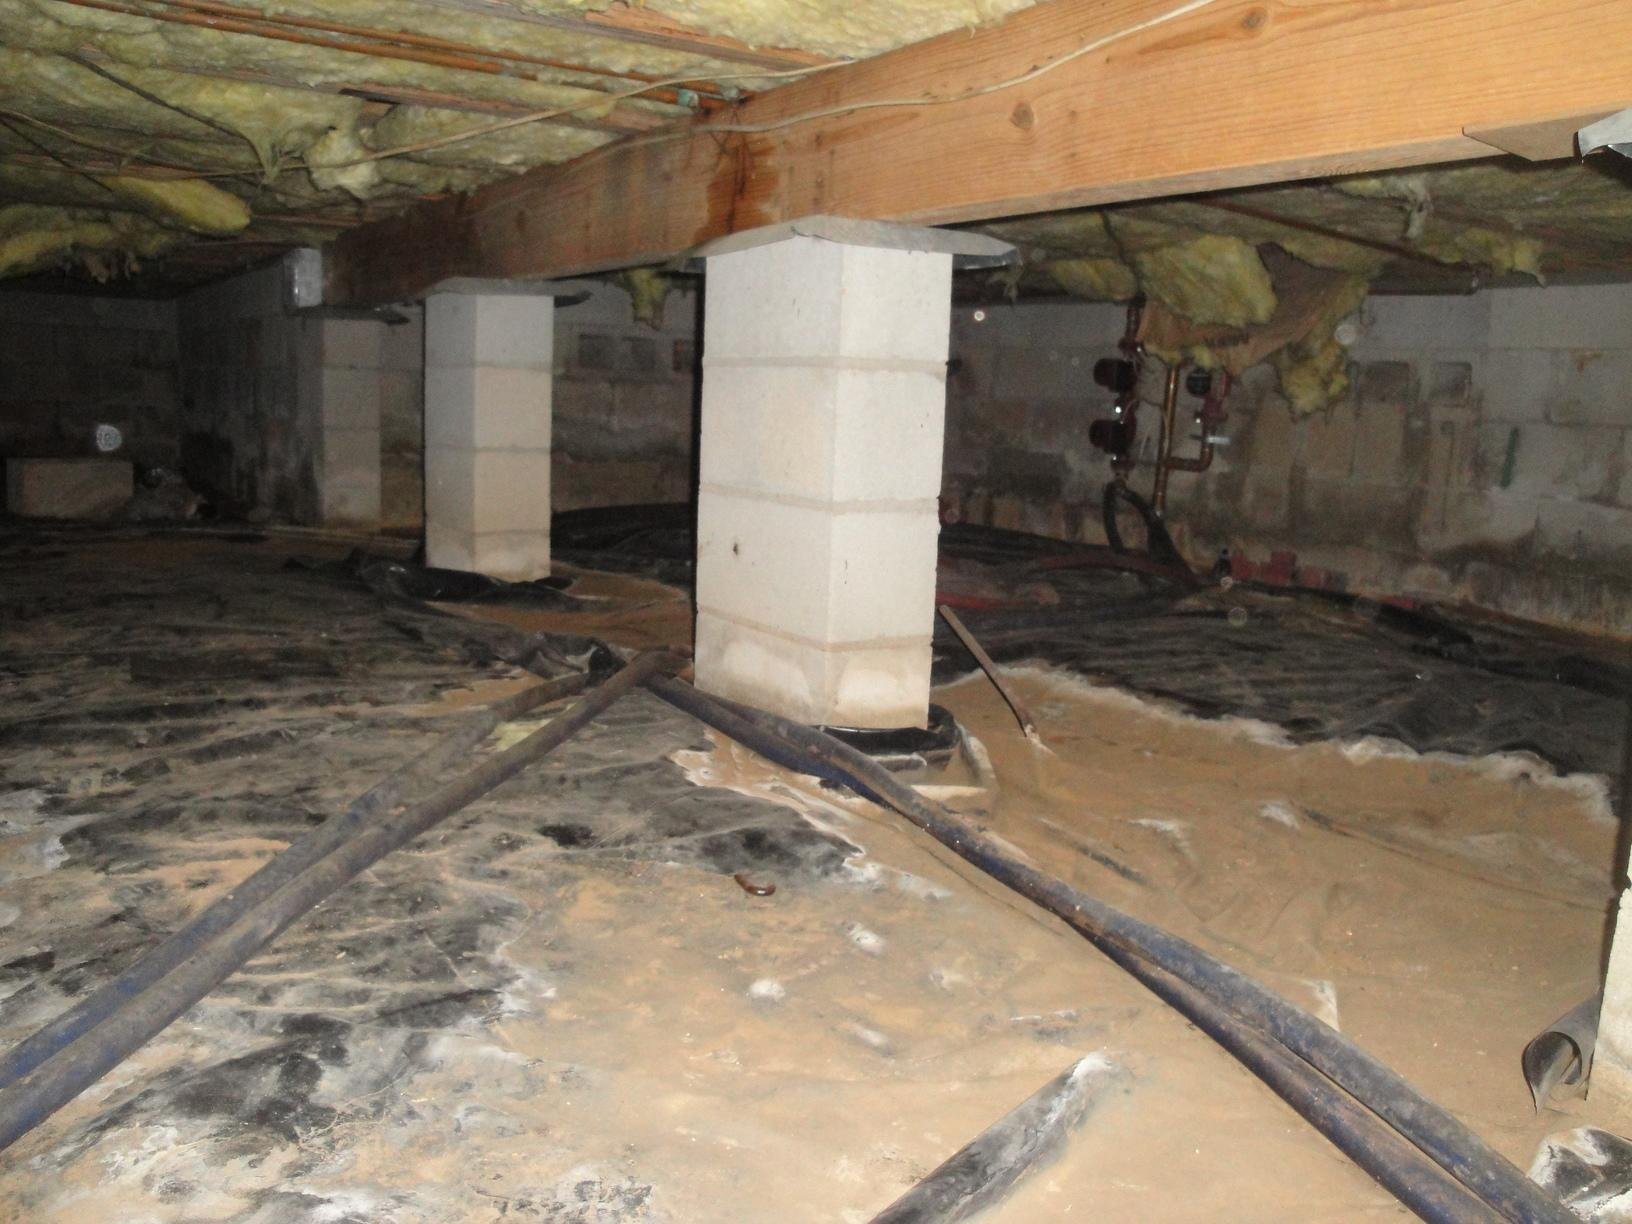 Crawlspace Encapsulation and Storm Water Drainage Solutions in Tallahassee, FL - Before Photo